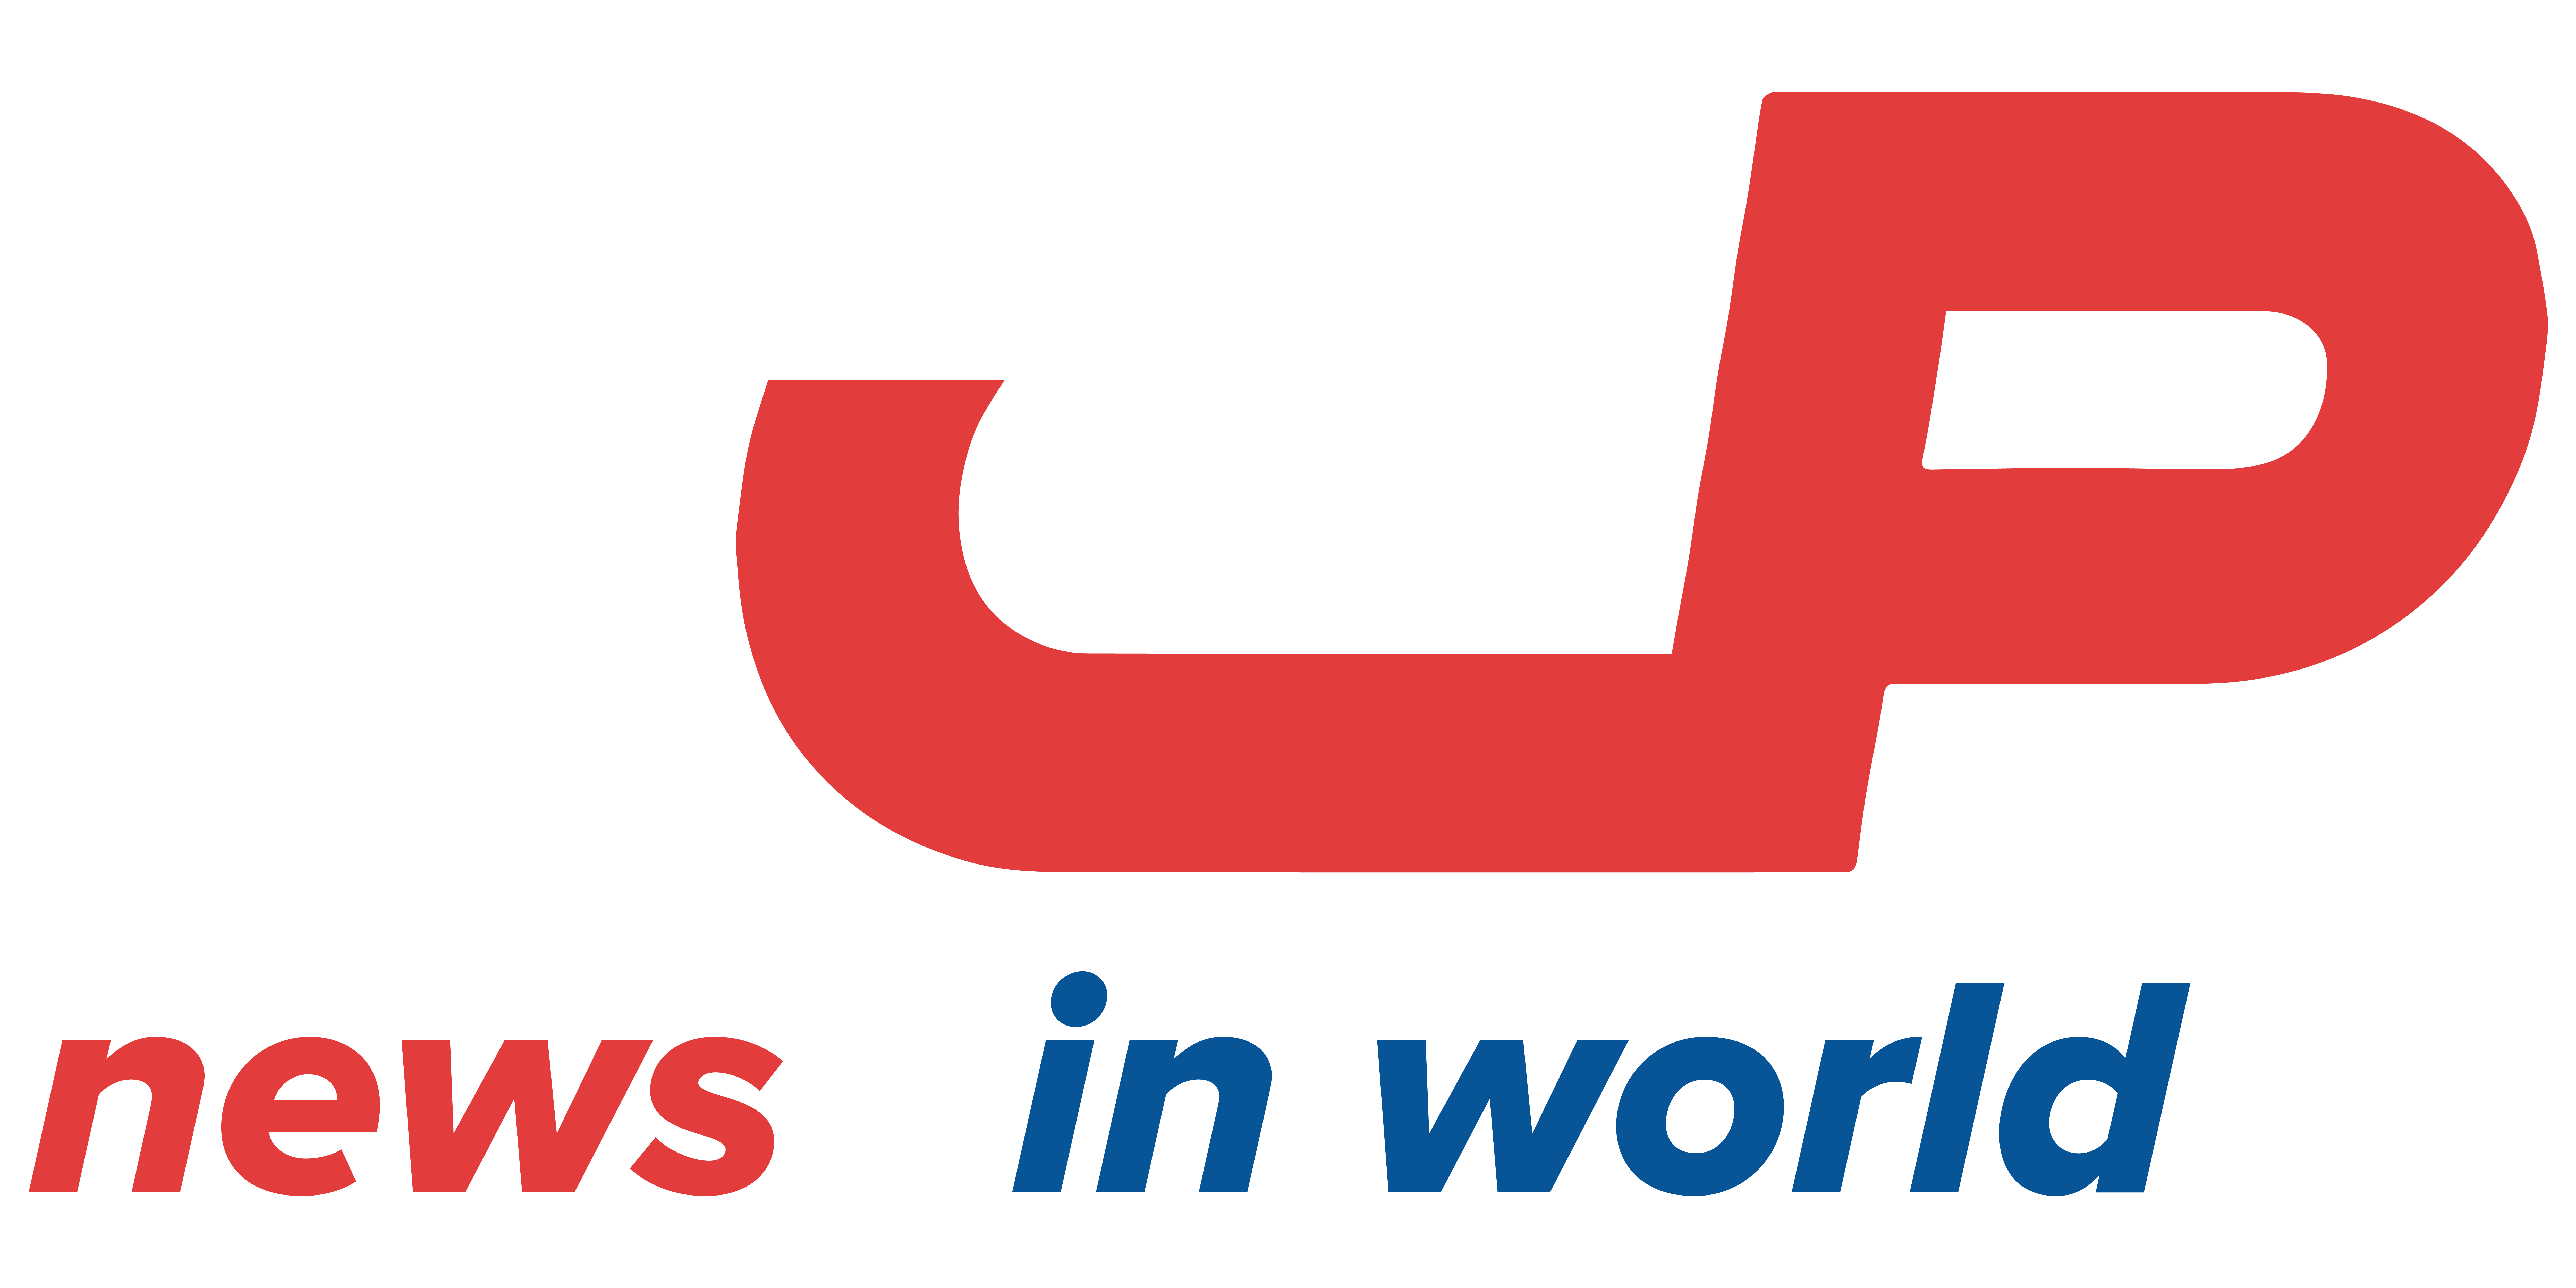 Reviews Top news in world